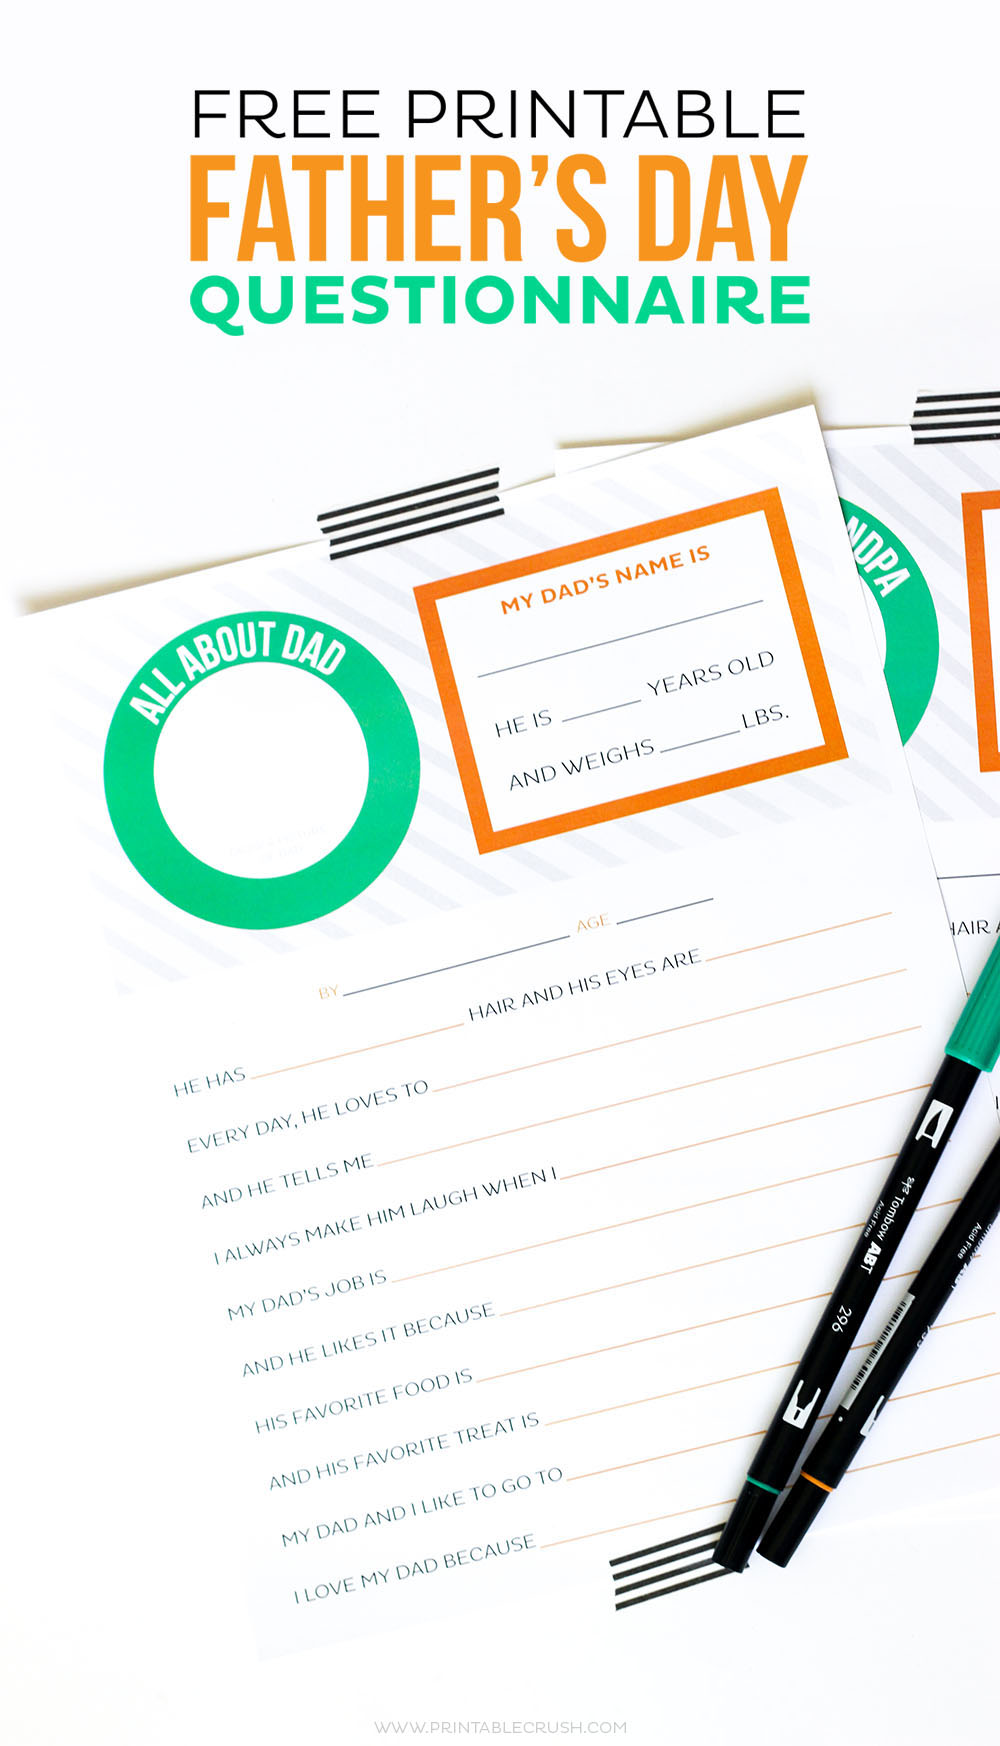 Download this FREE Father's Day Questionnaire Printable. It's a cute gift for dad and a fun activity for the kids!